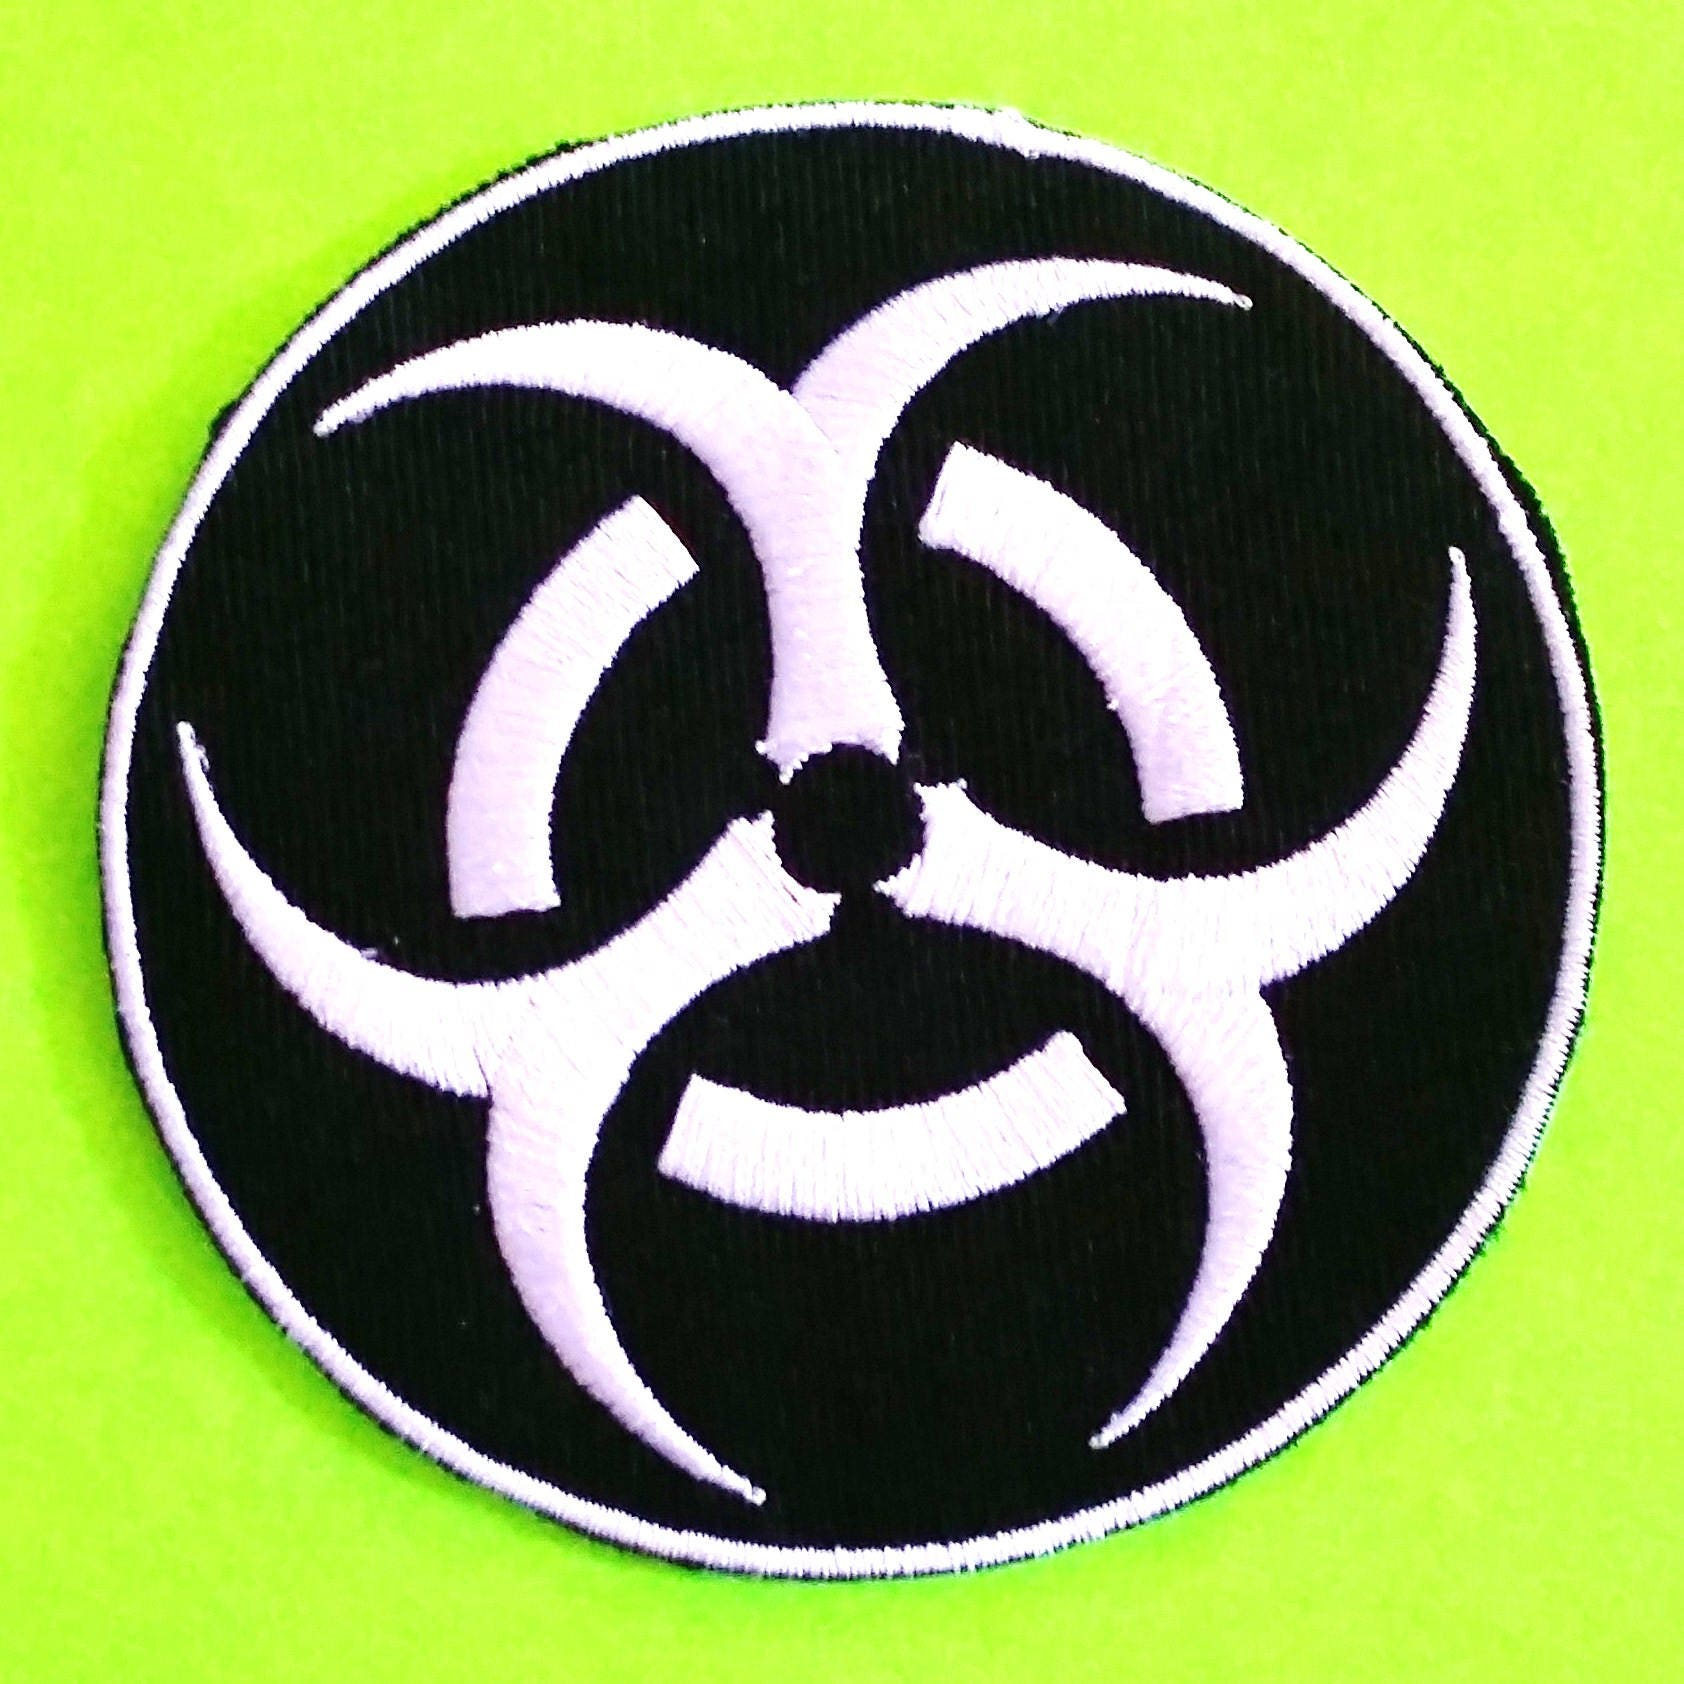 Biohazard Symbol Toxic Zombie Warning Patch Black And White